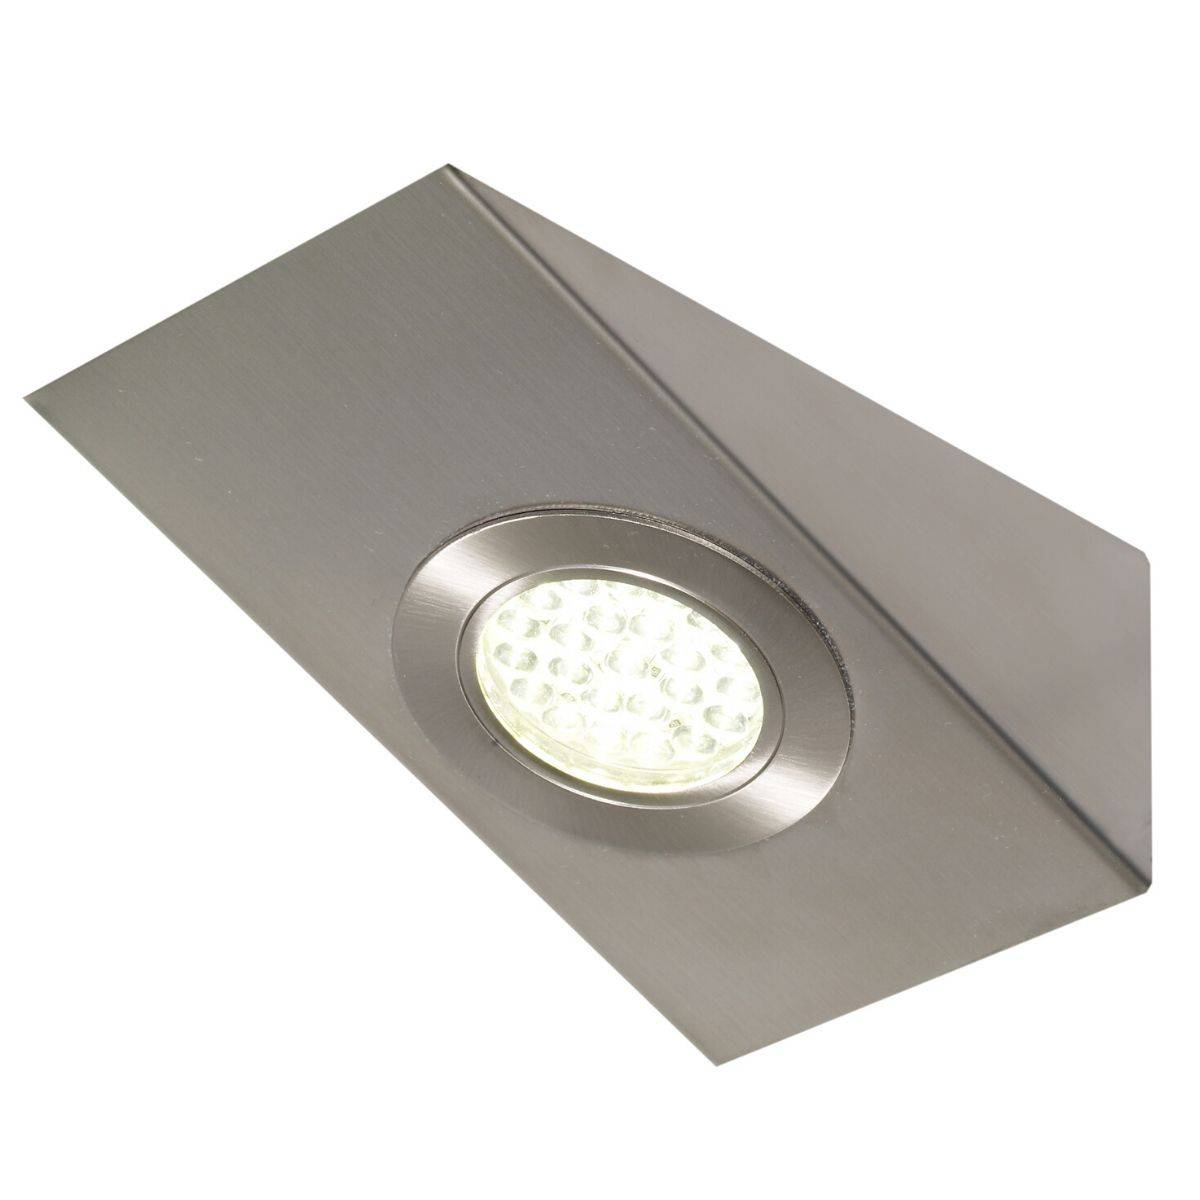 Simple Lighting 1.8w LED Wedge Shaped Under-Cabinet Light - Cool White or Warm White